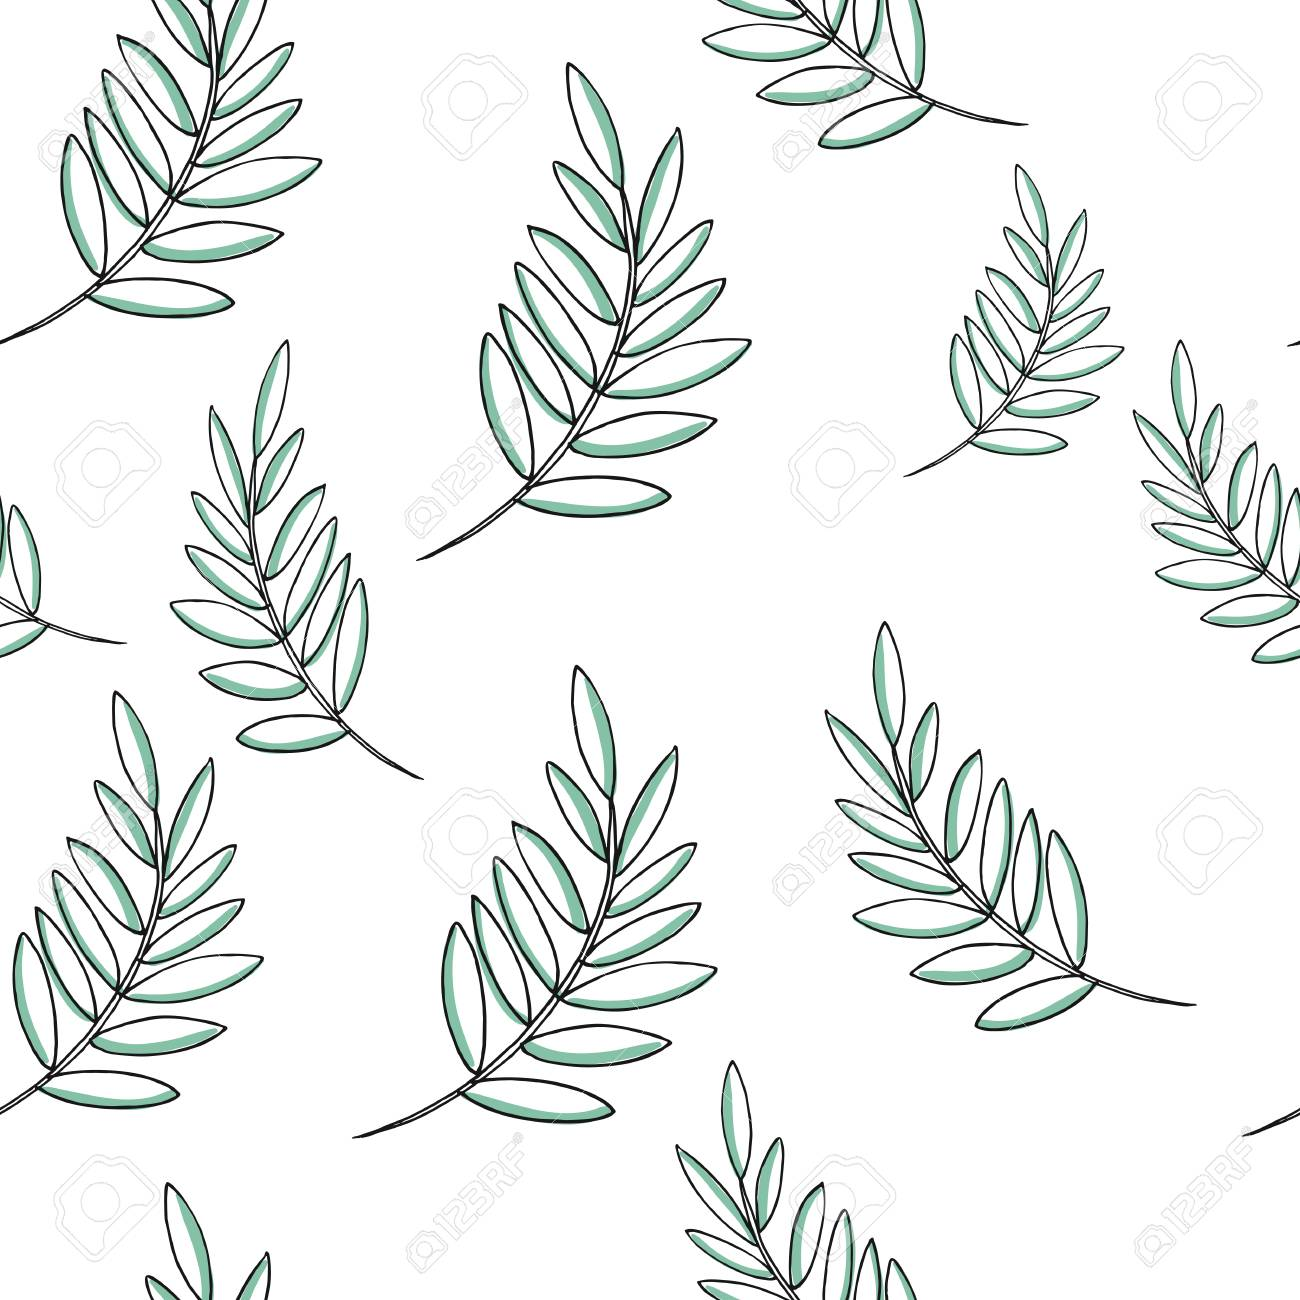 Leaf Vector Drawing Set Palm Leaves Pattern Herbal Engraved Royalty Free Cliparts Vectors And Stock Illustration Image 72270919